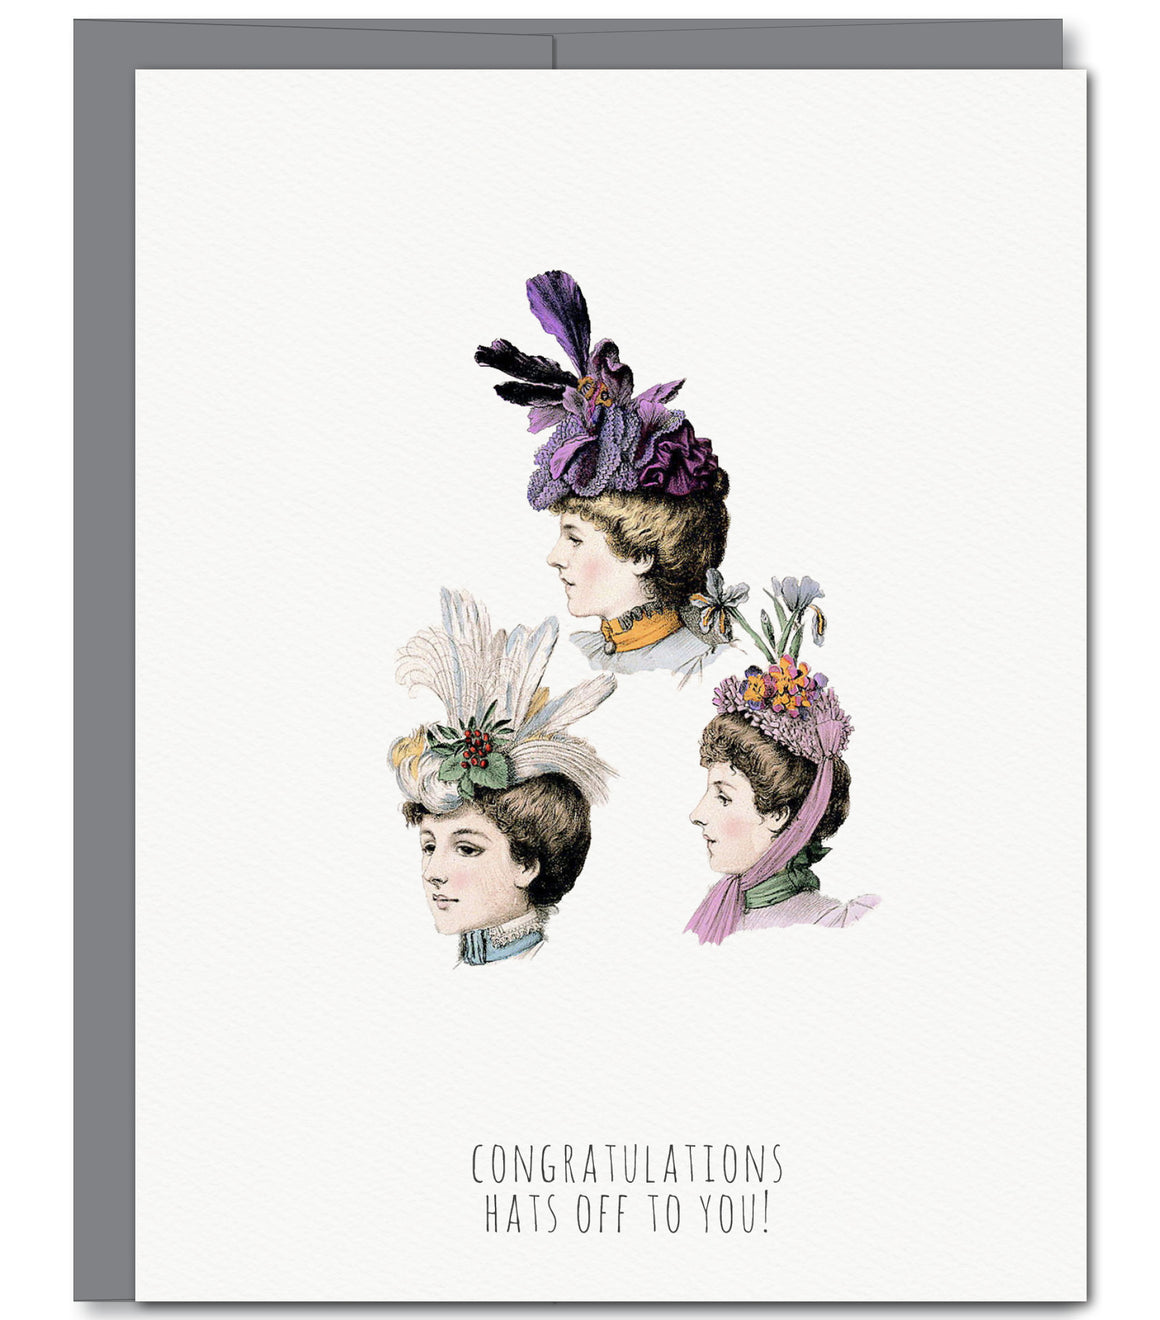 Hats Congratulations Glitter Greeting Card | Sylvan Gate Design